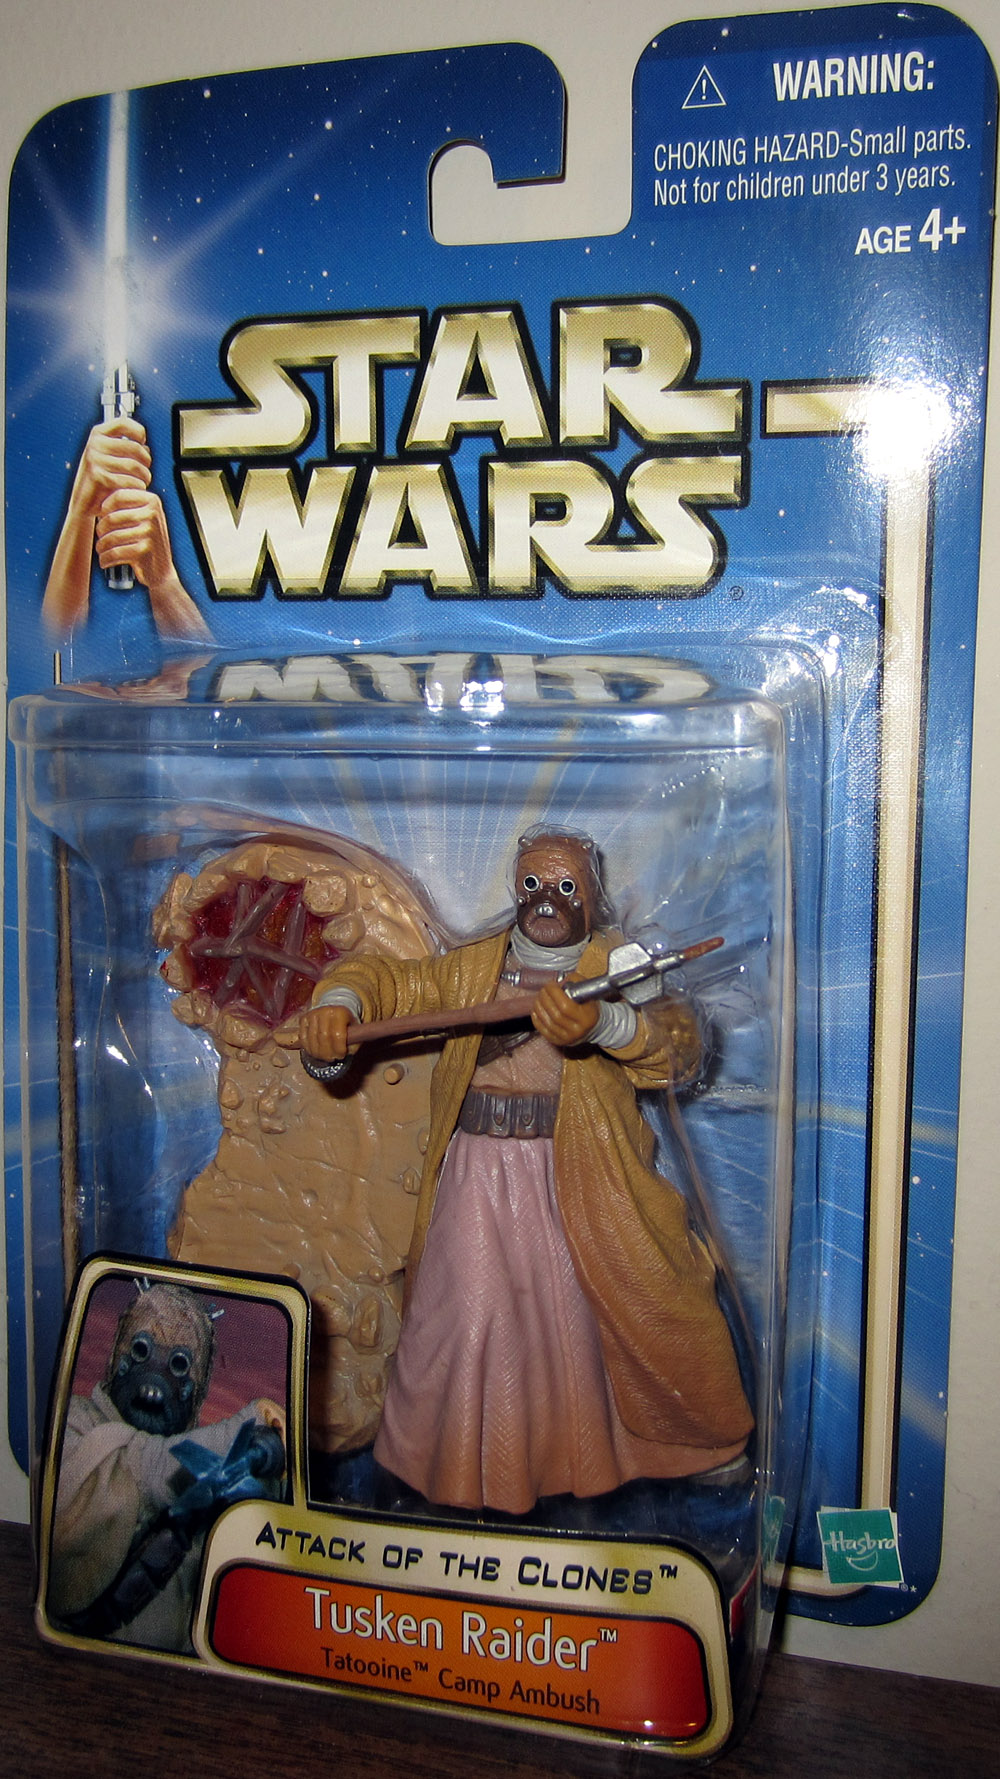 Tusken Raider (Tatooine Camp Ambush)